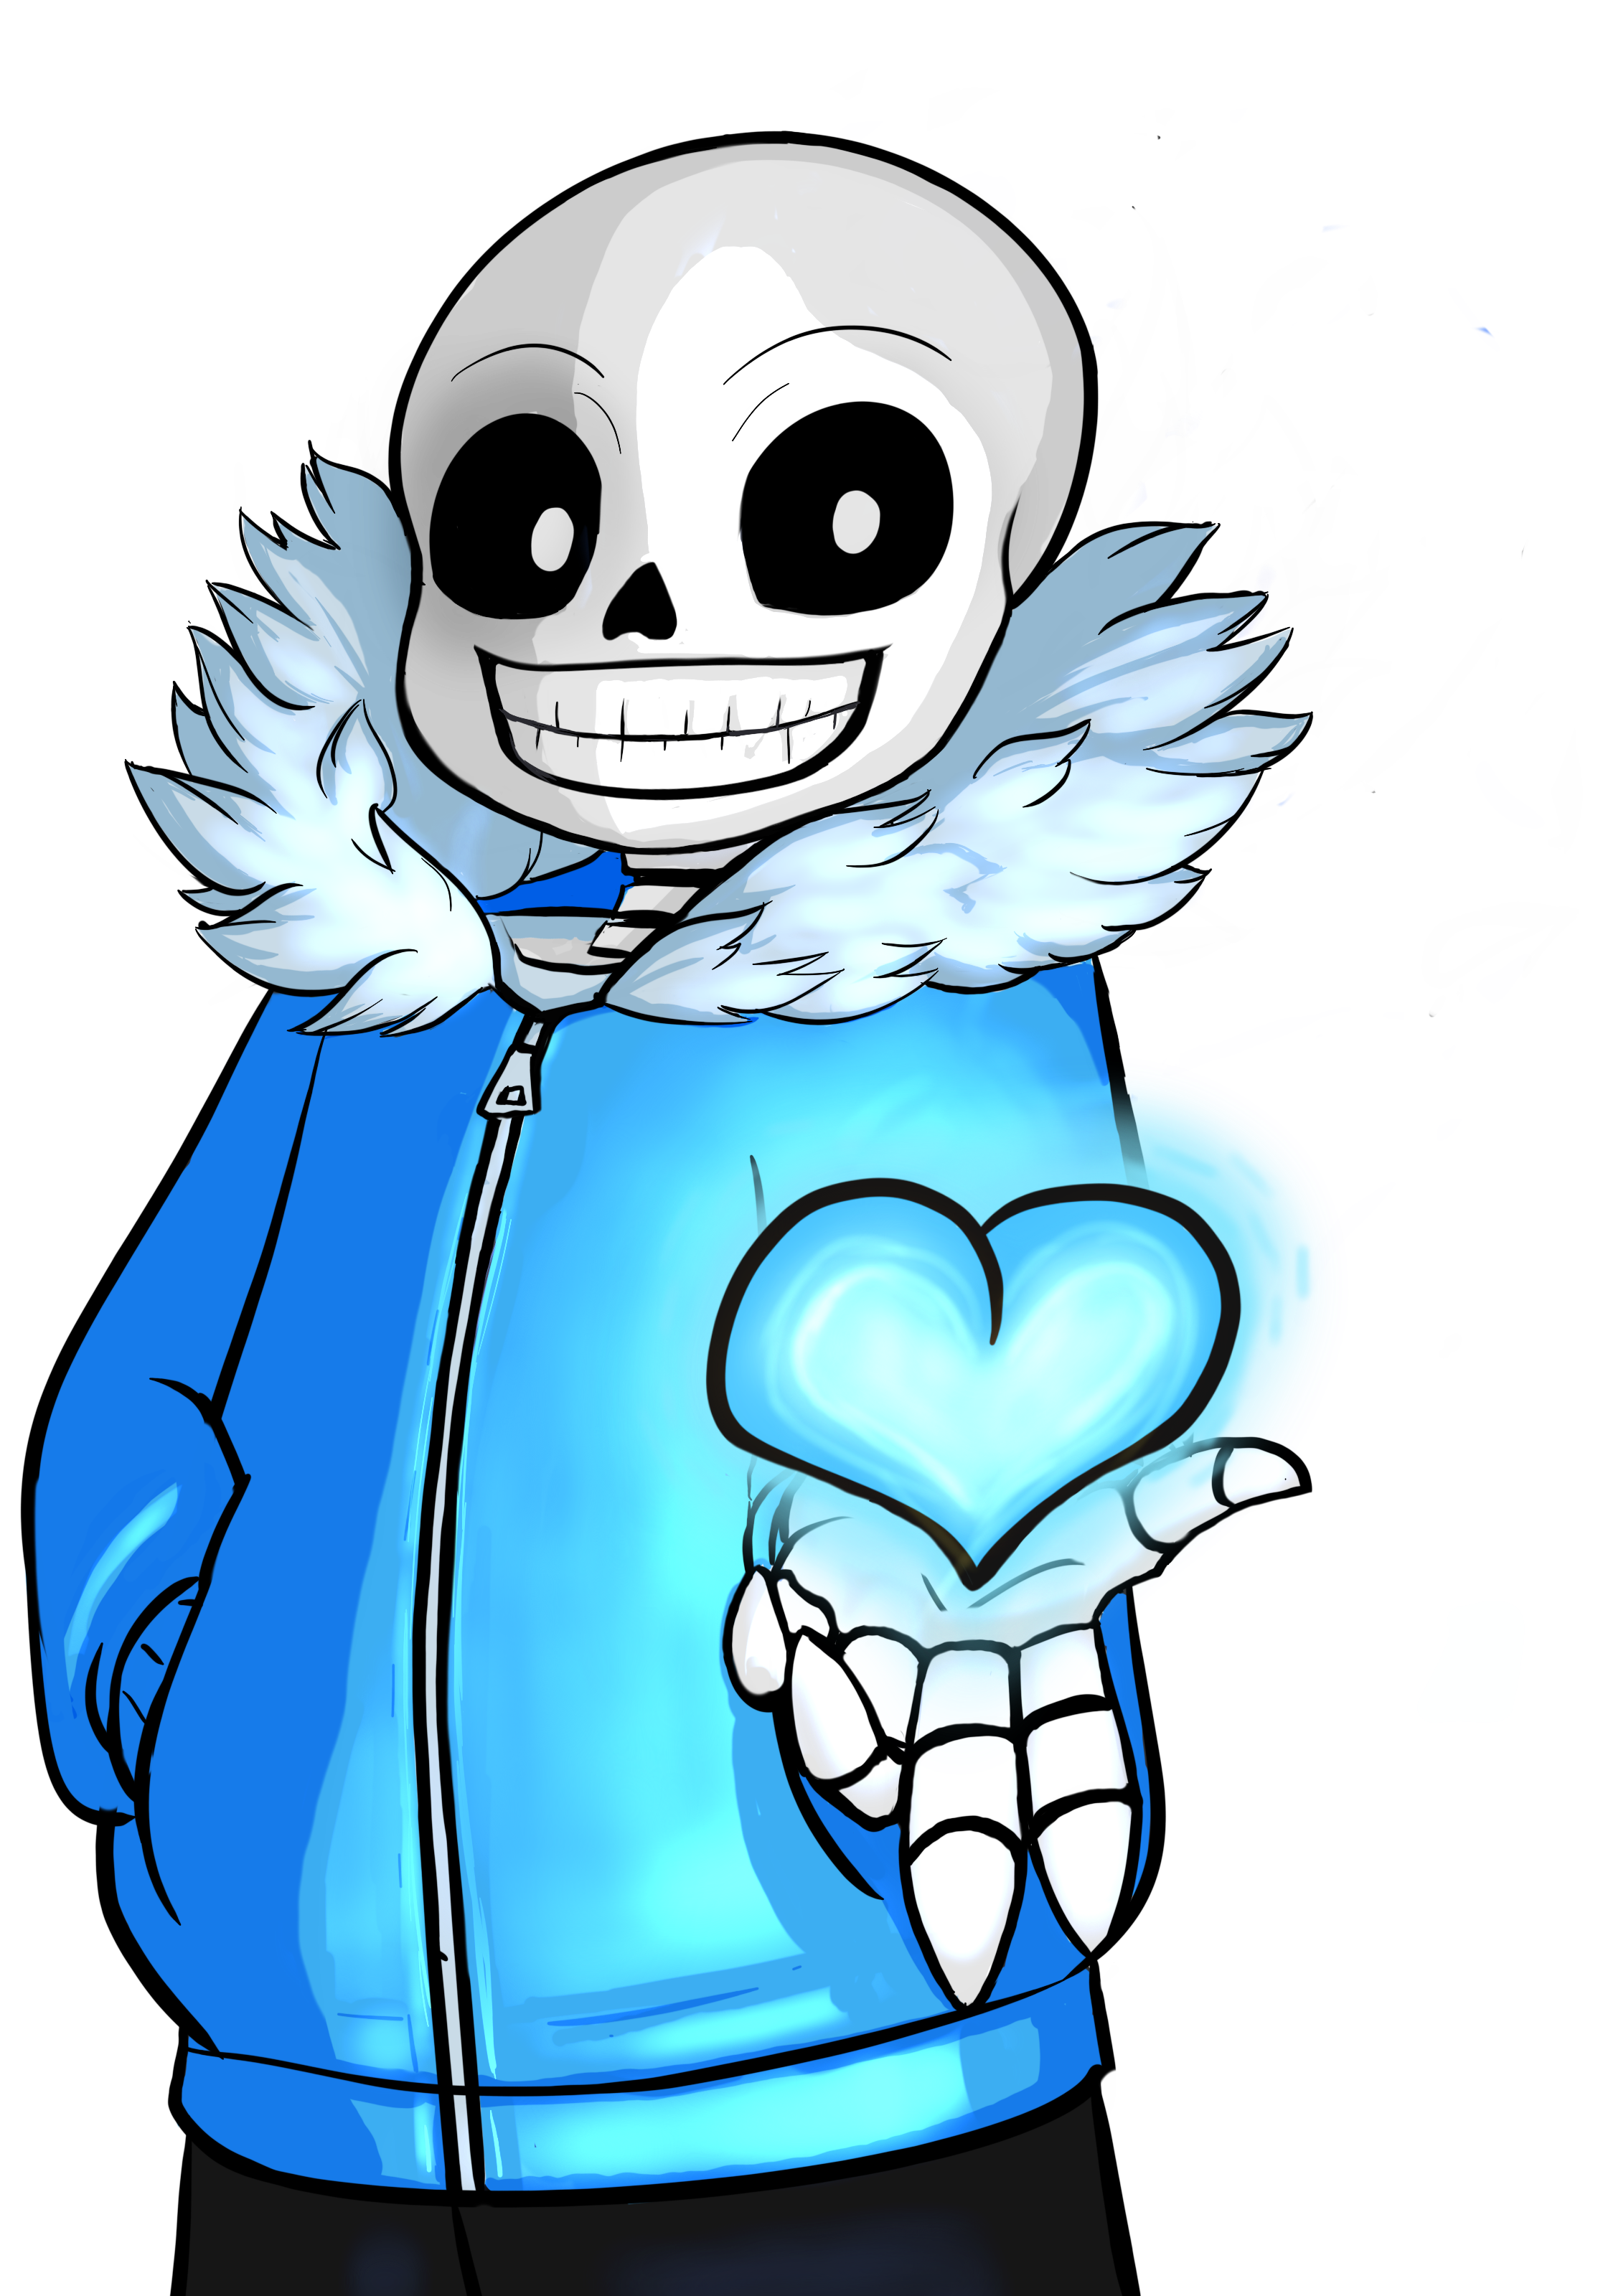 Sans Gives Heart Themed Items On Red Bubble Undertale Sans Redbubble Heart Themed Blue Heart Anime